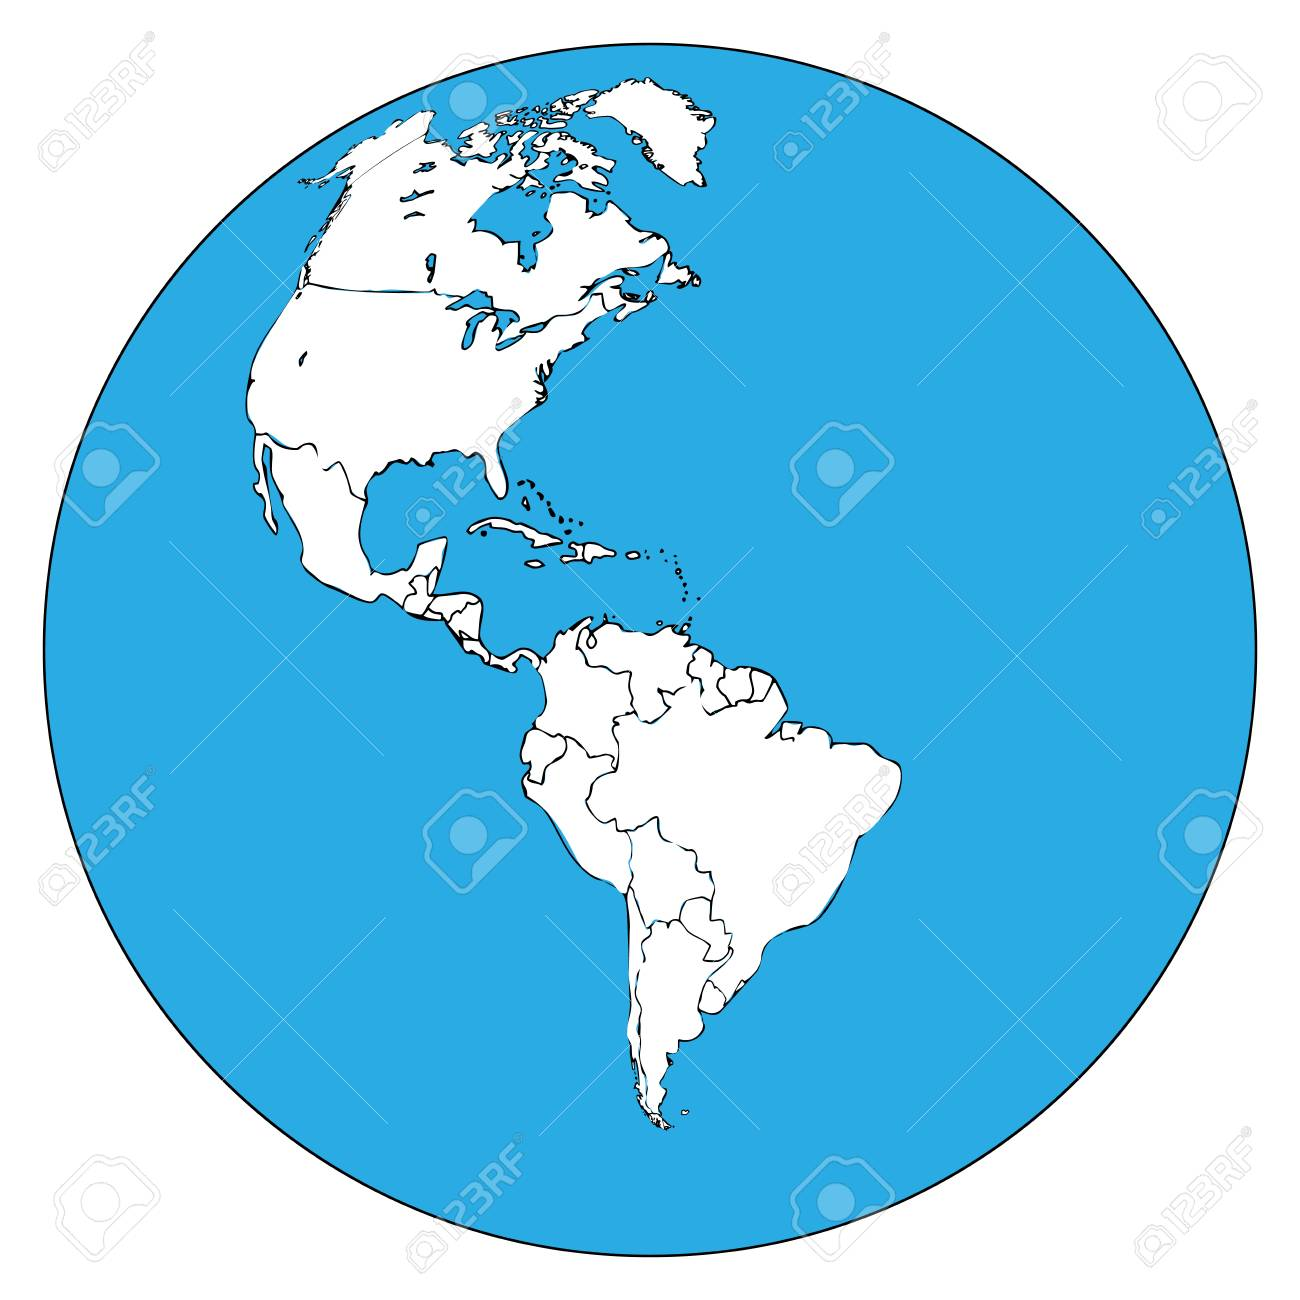 Images Of South America Globe Map on map of antarctica globe, map of pacific ocean globe, map of world globe,